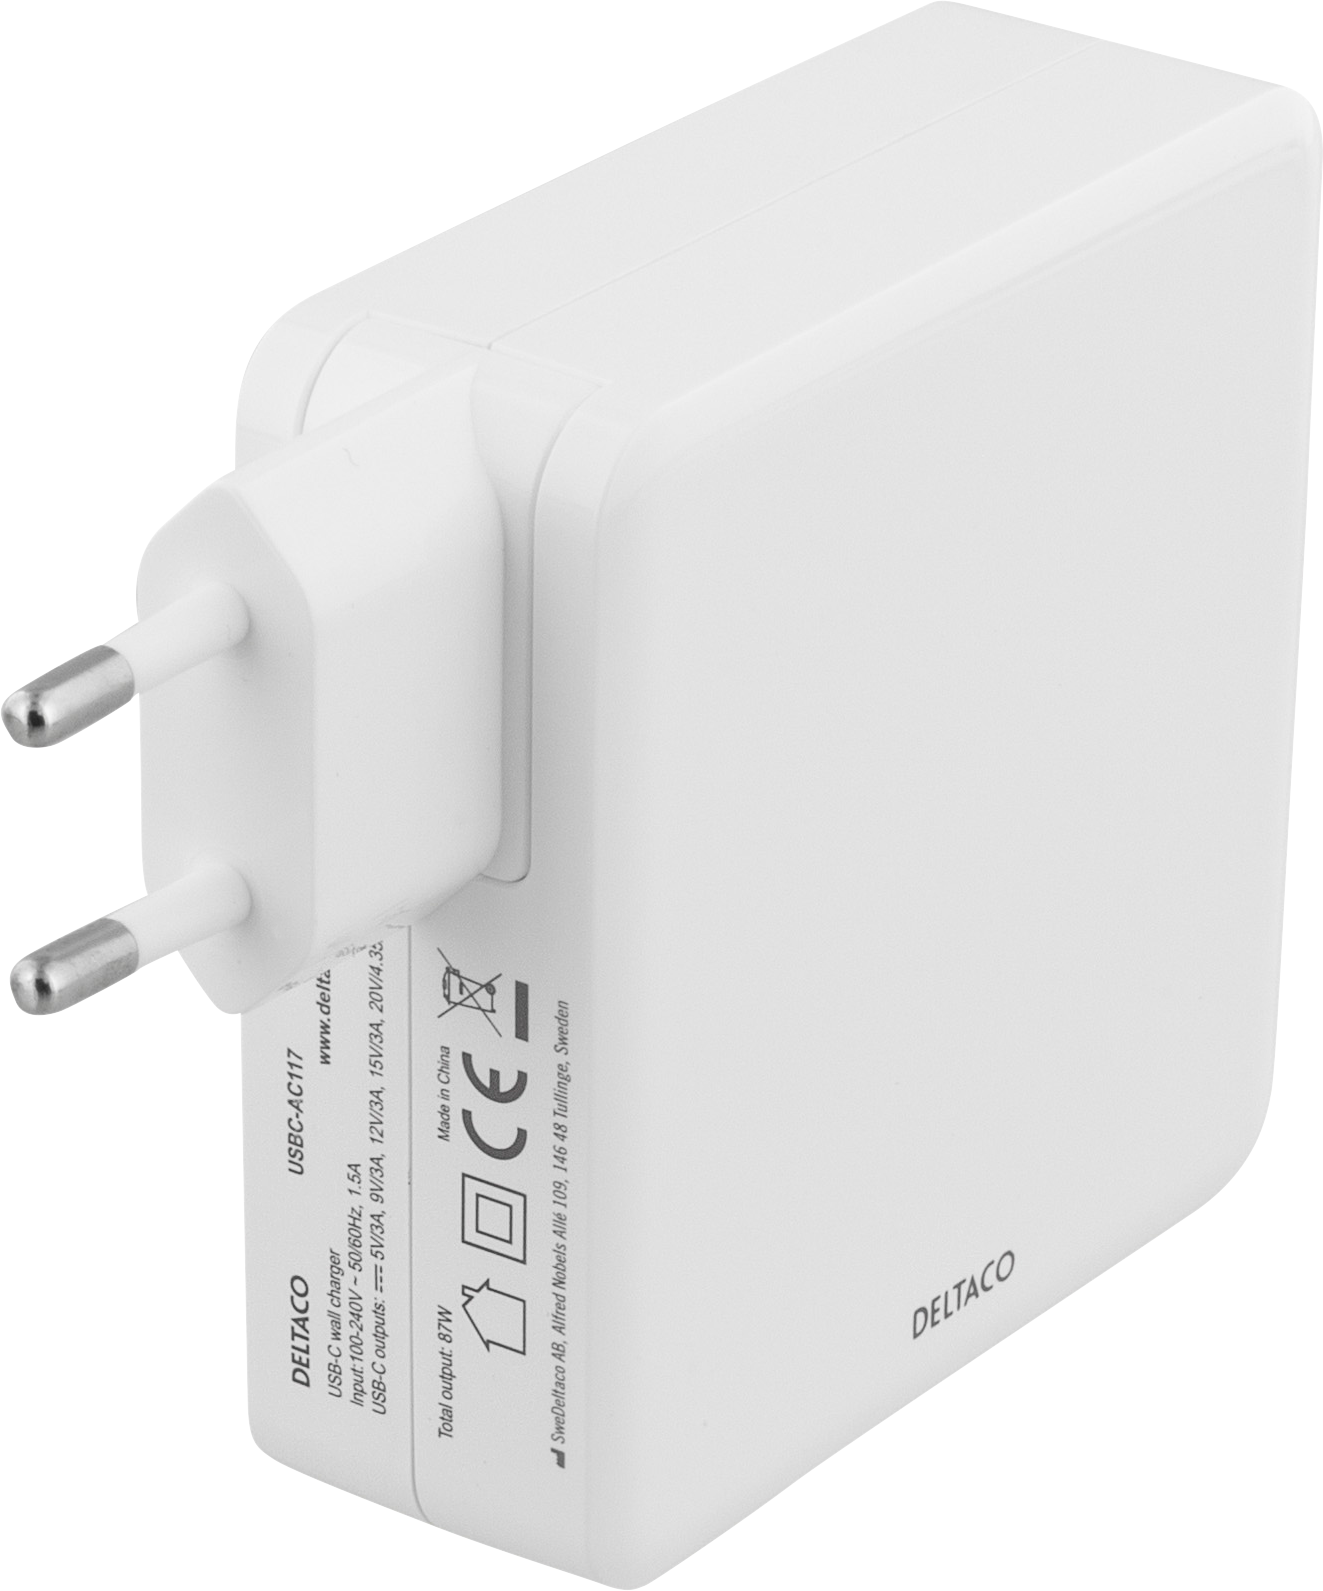 Deltaco 87W PD USB-C Wall Charger